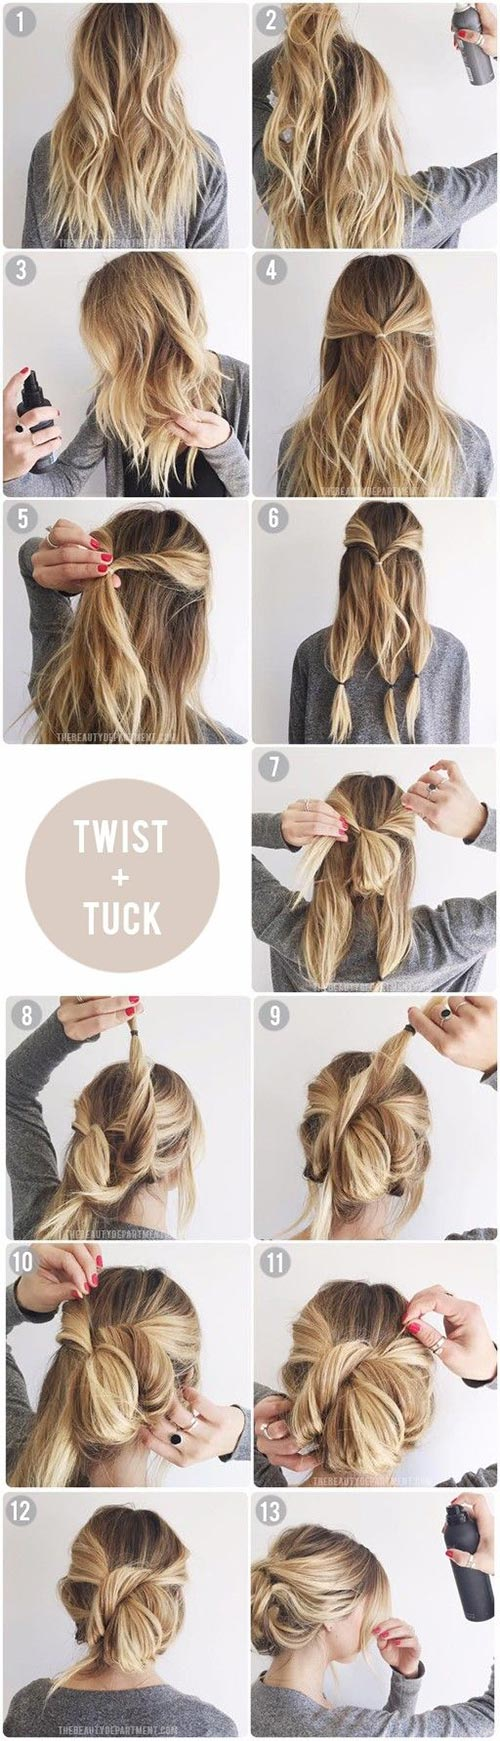 easy hair up styles to do yourself top 10 updo tutorials for different hair lengths 5520